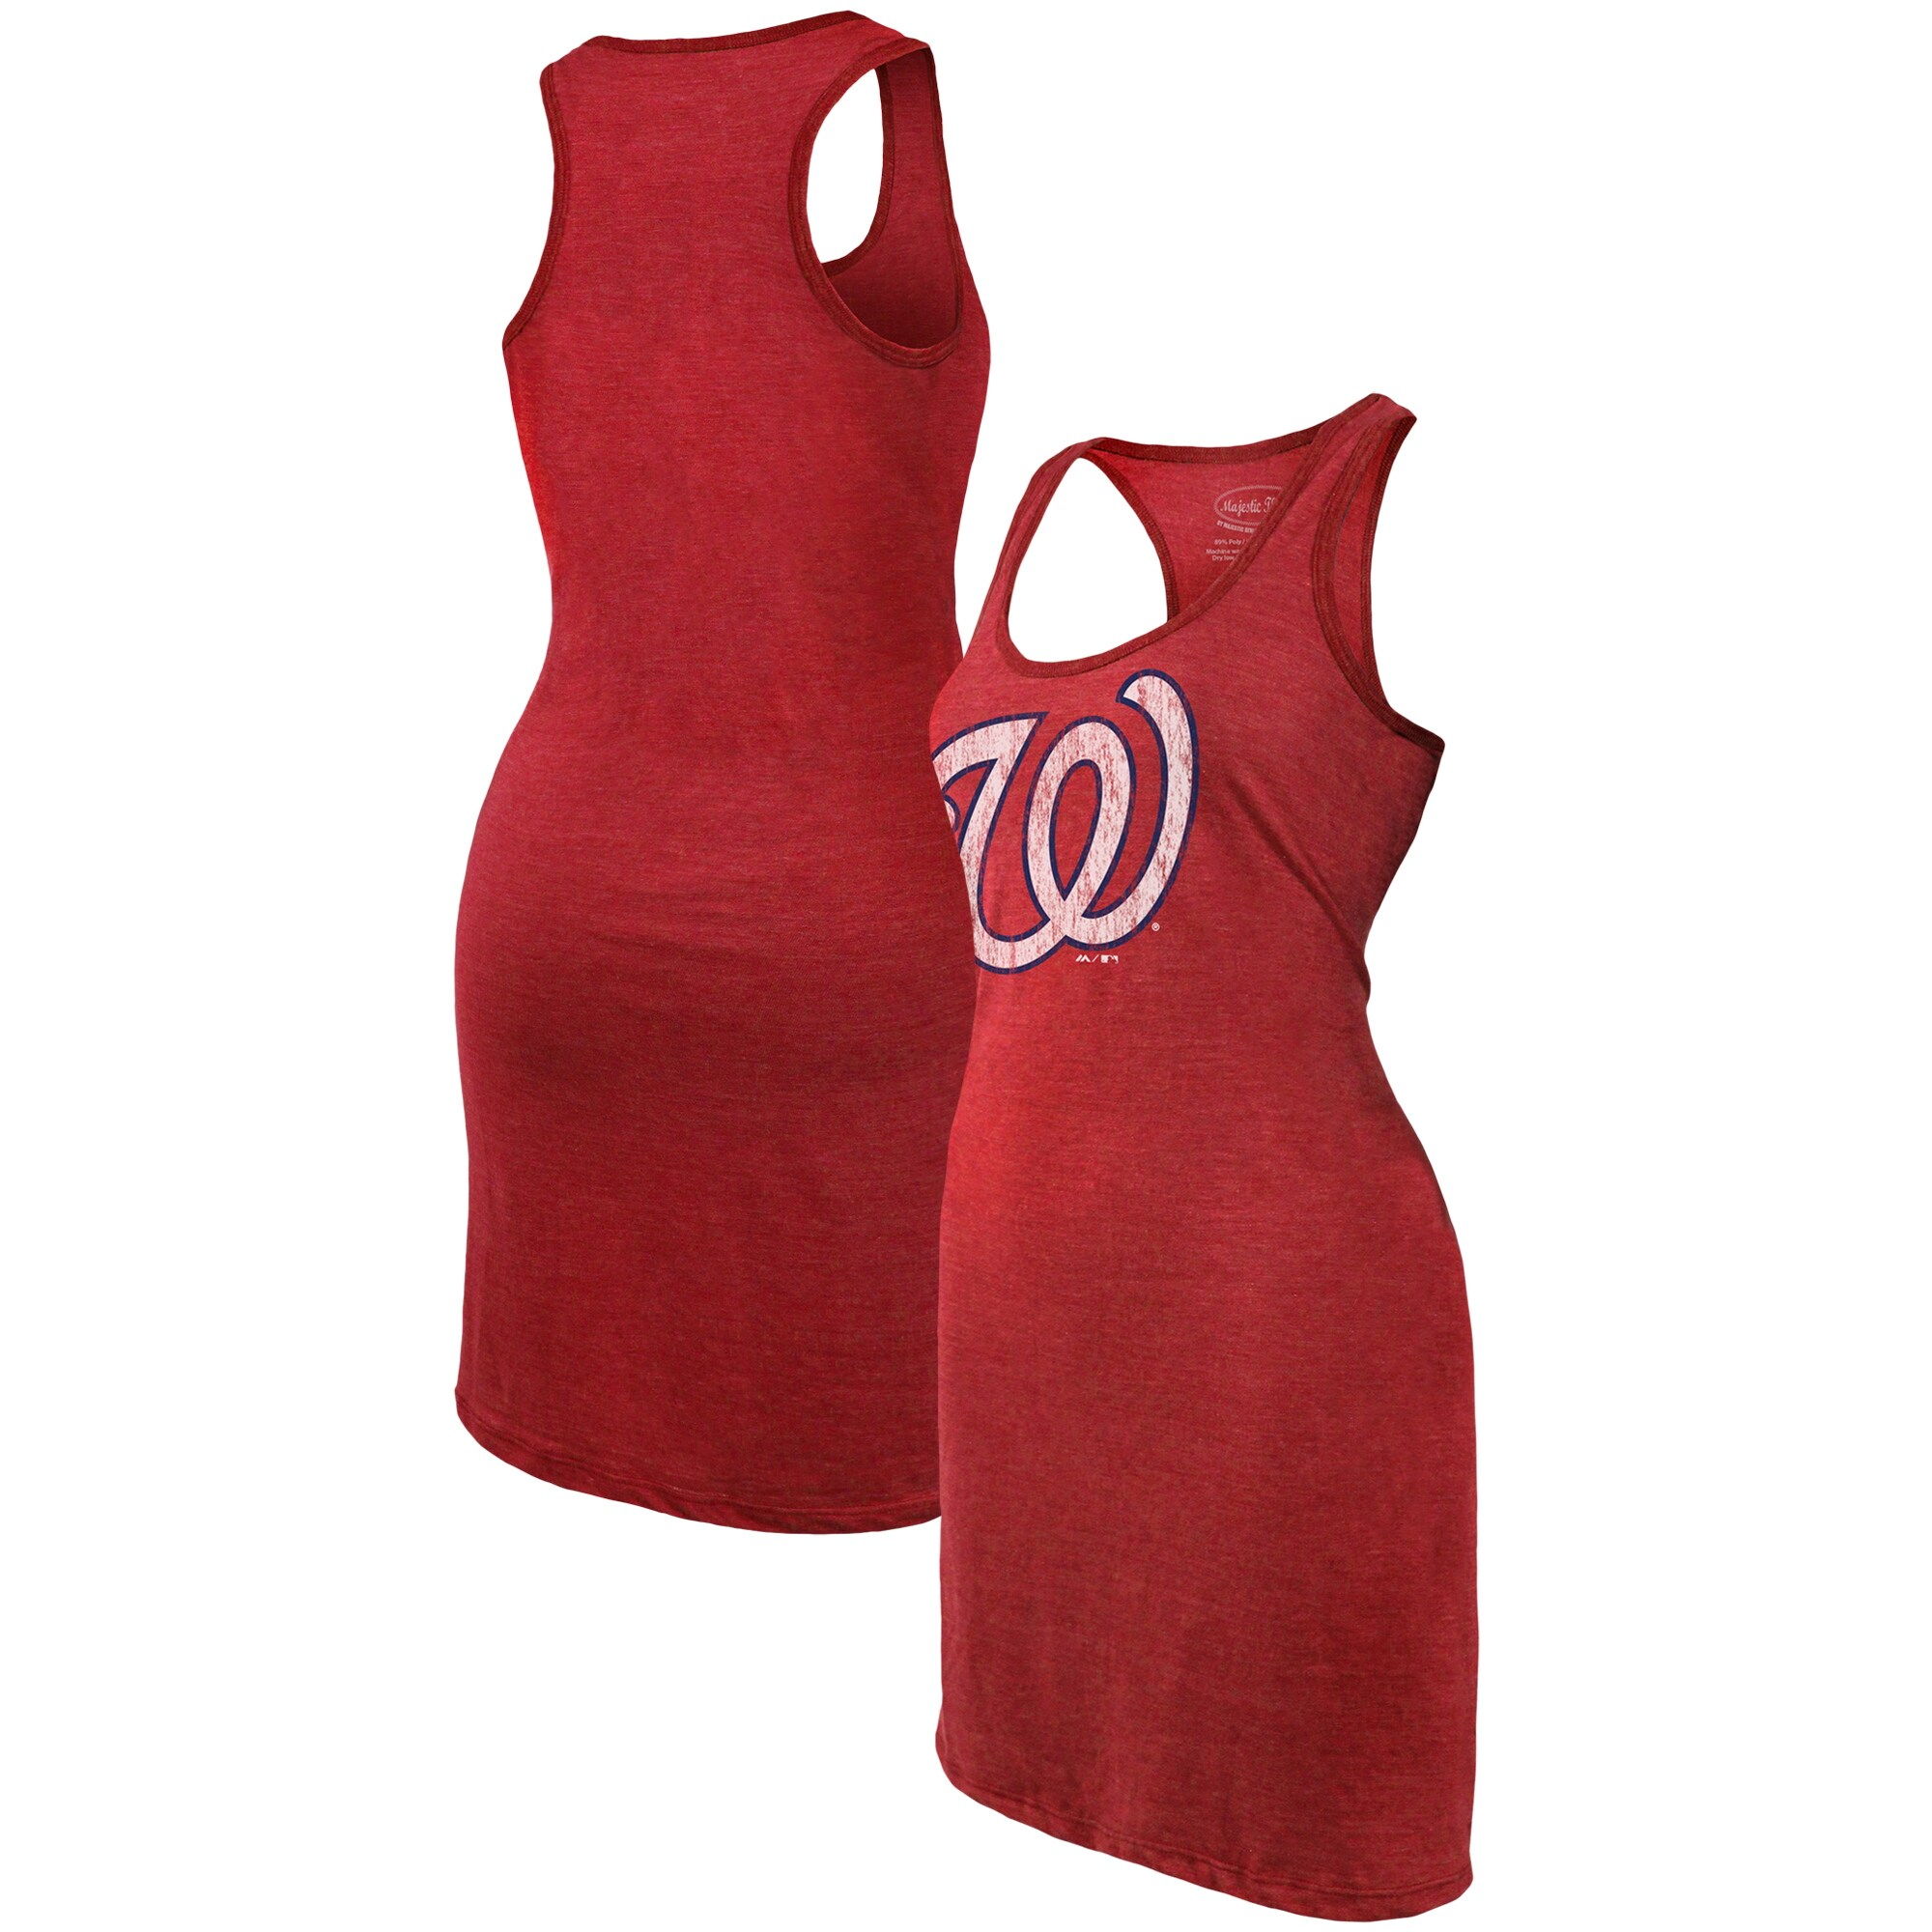 Washington Nationals Majestic Threads Women's Tri-Blend Racerback Sleeveless Dress - Red